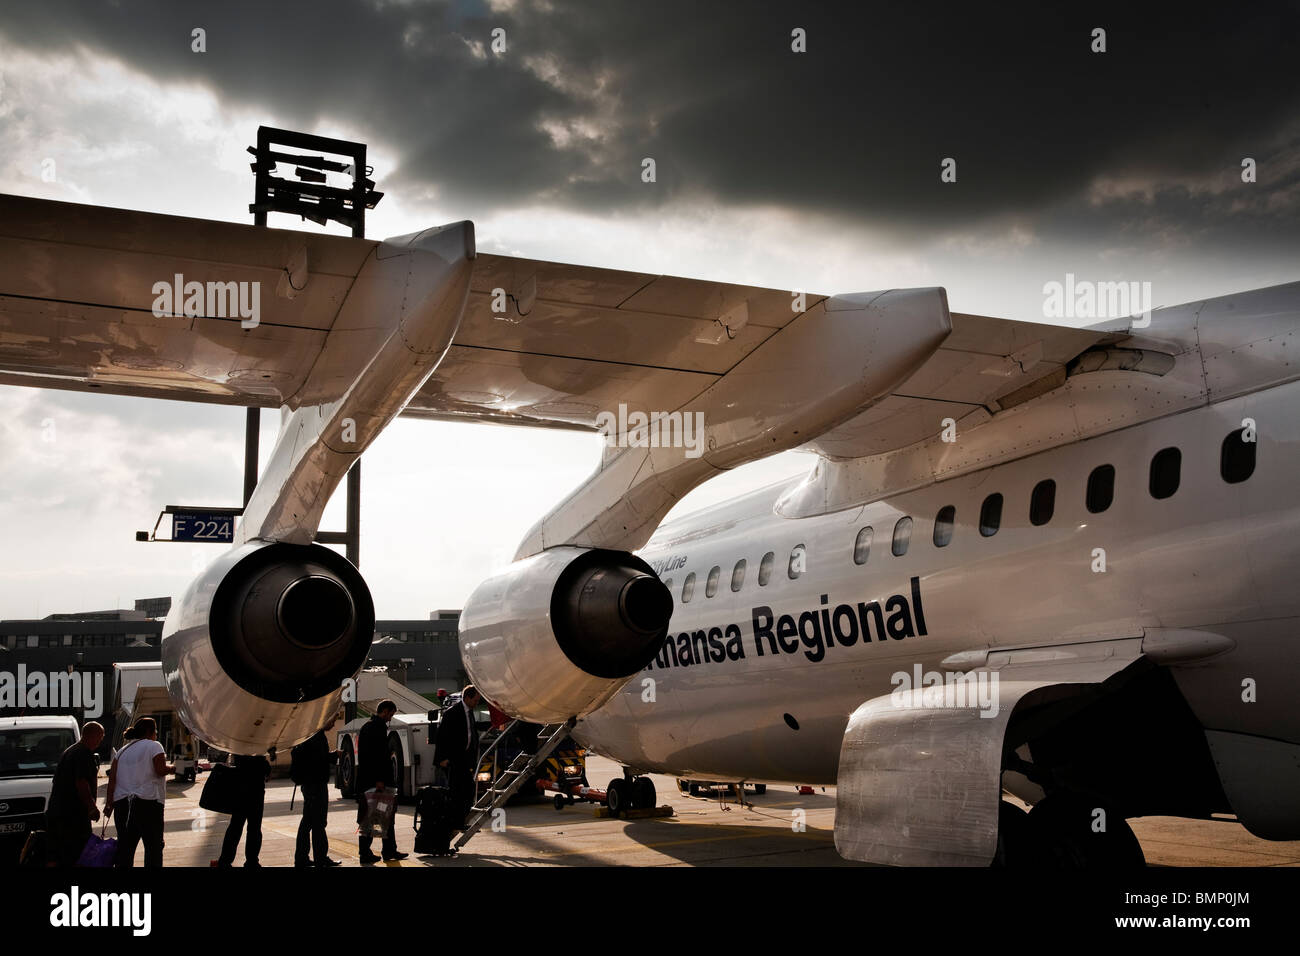 Passenger embark onto a Lufthansa Regional Airliner at Frankfurt International Airport - Stock Image